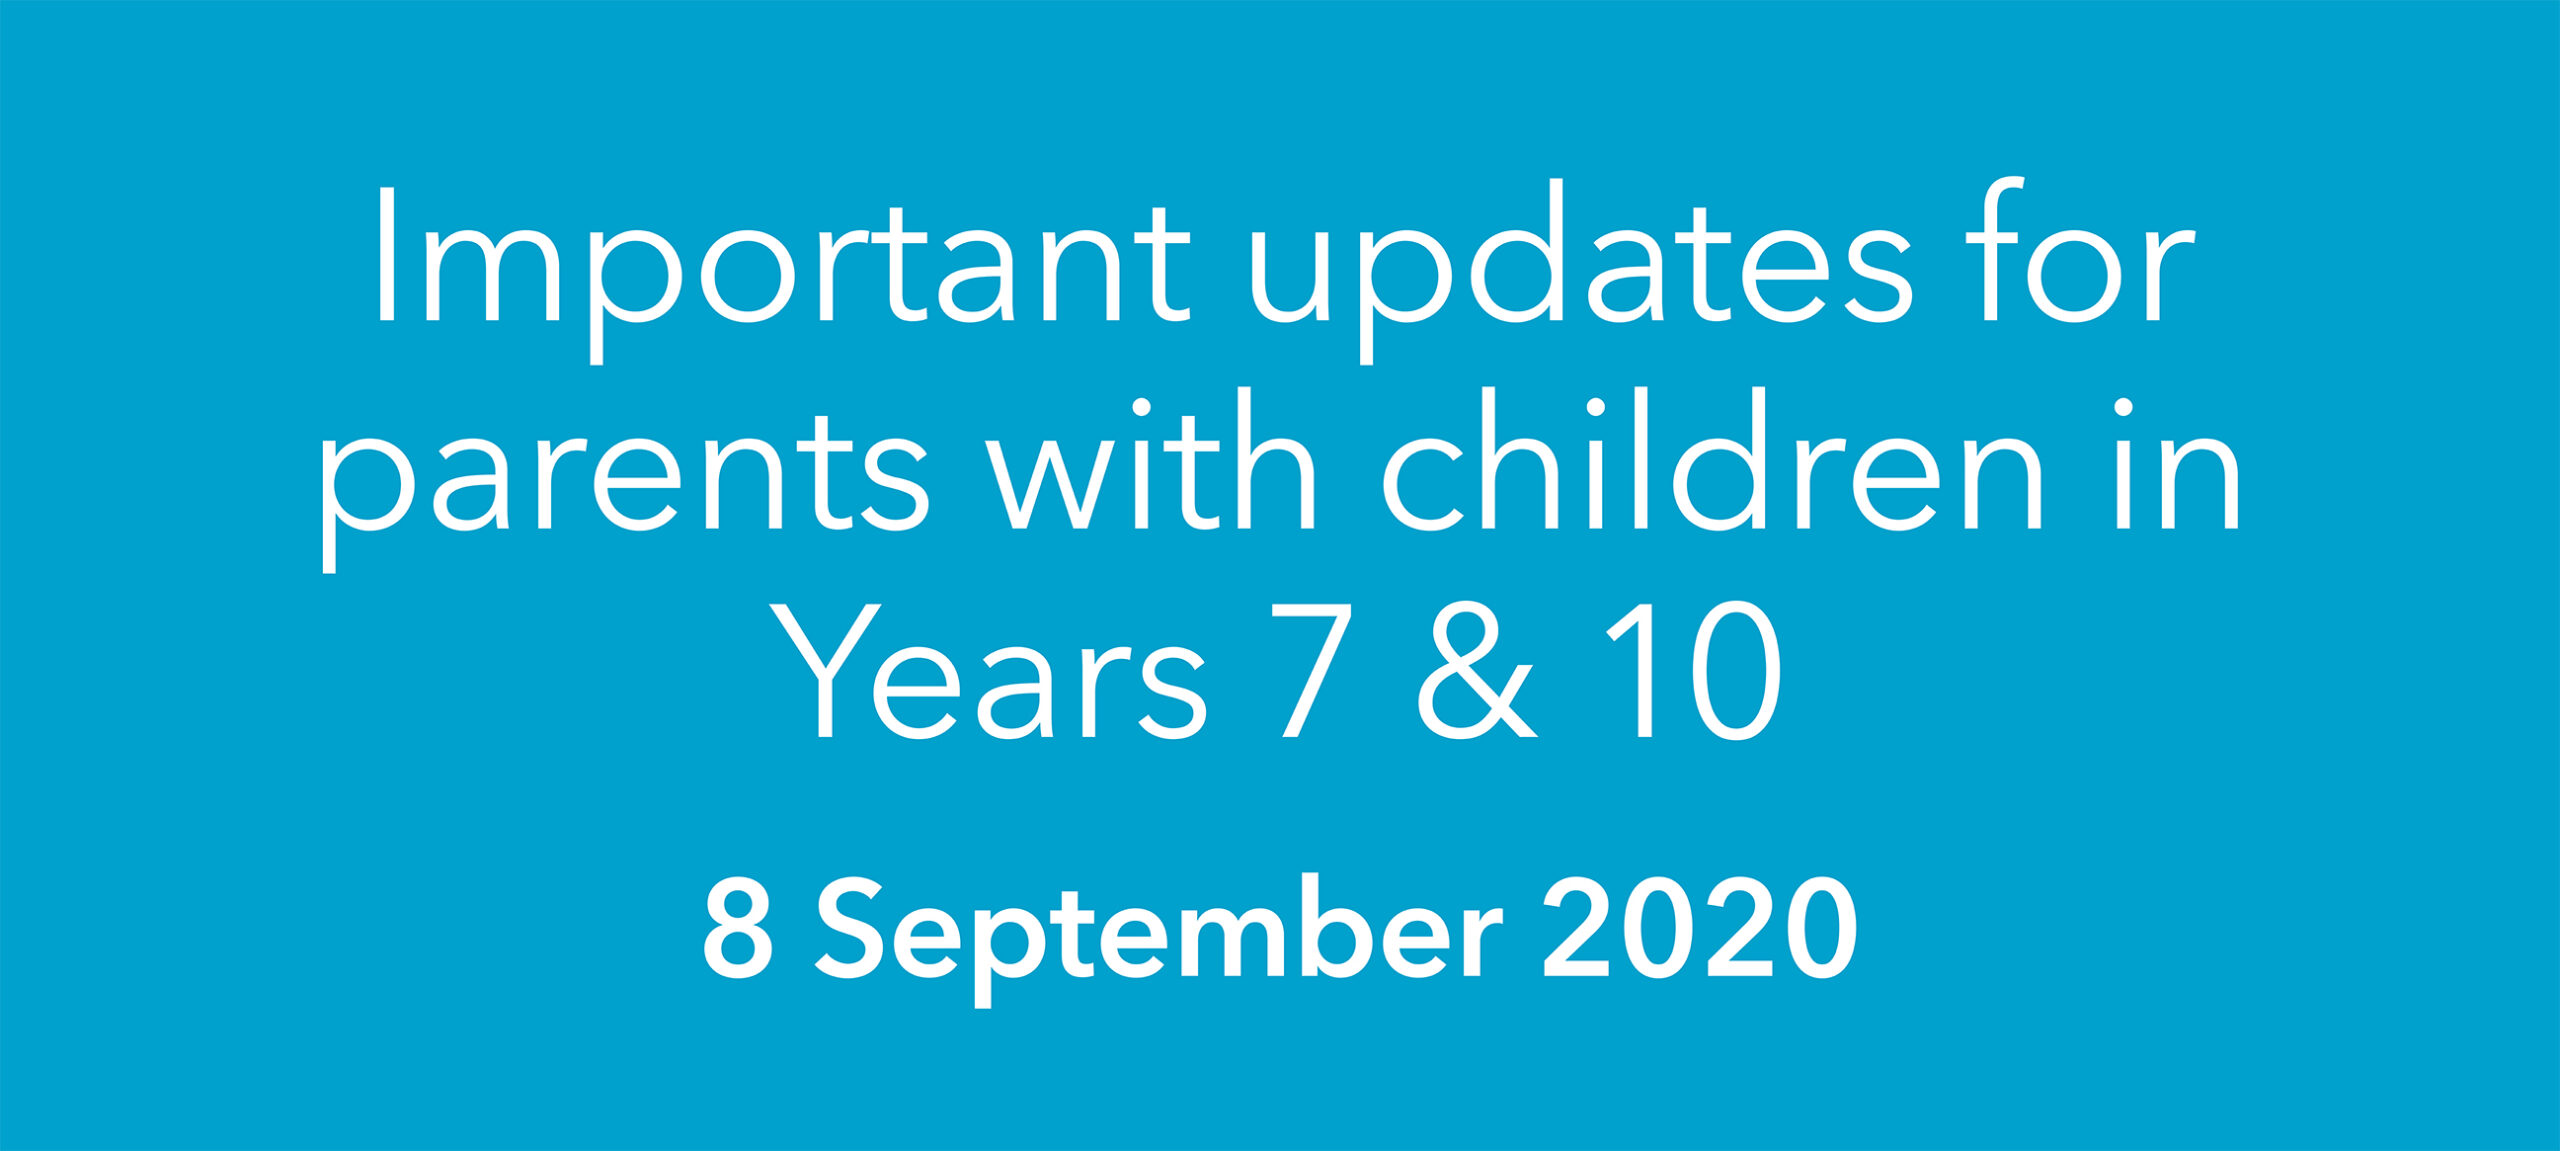 Important updates for parents with children in Years 7 & 10